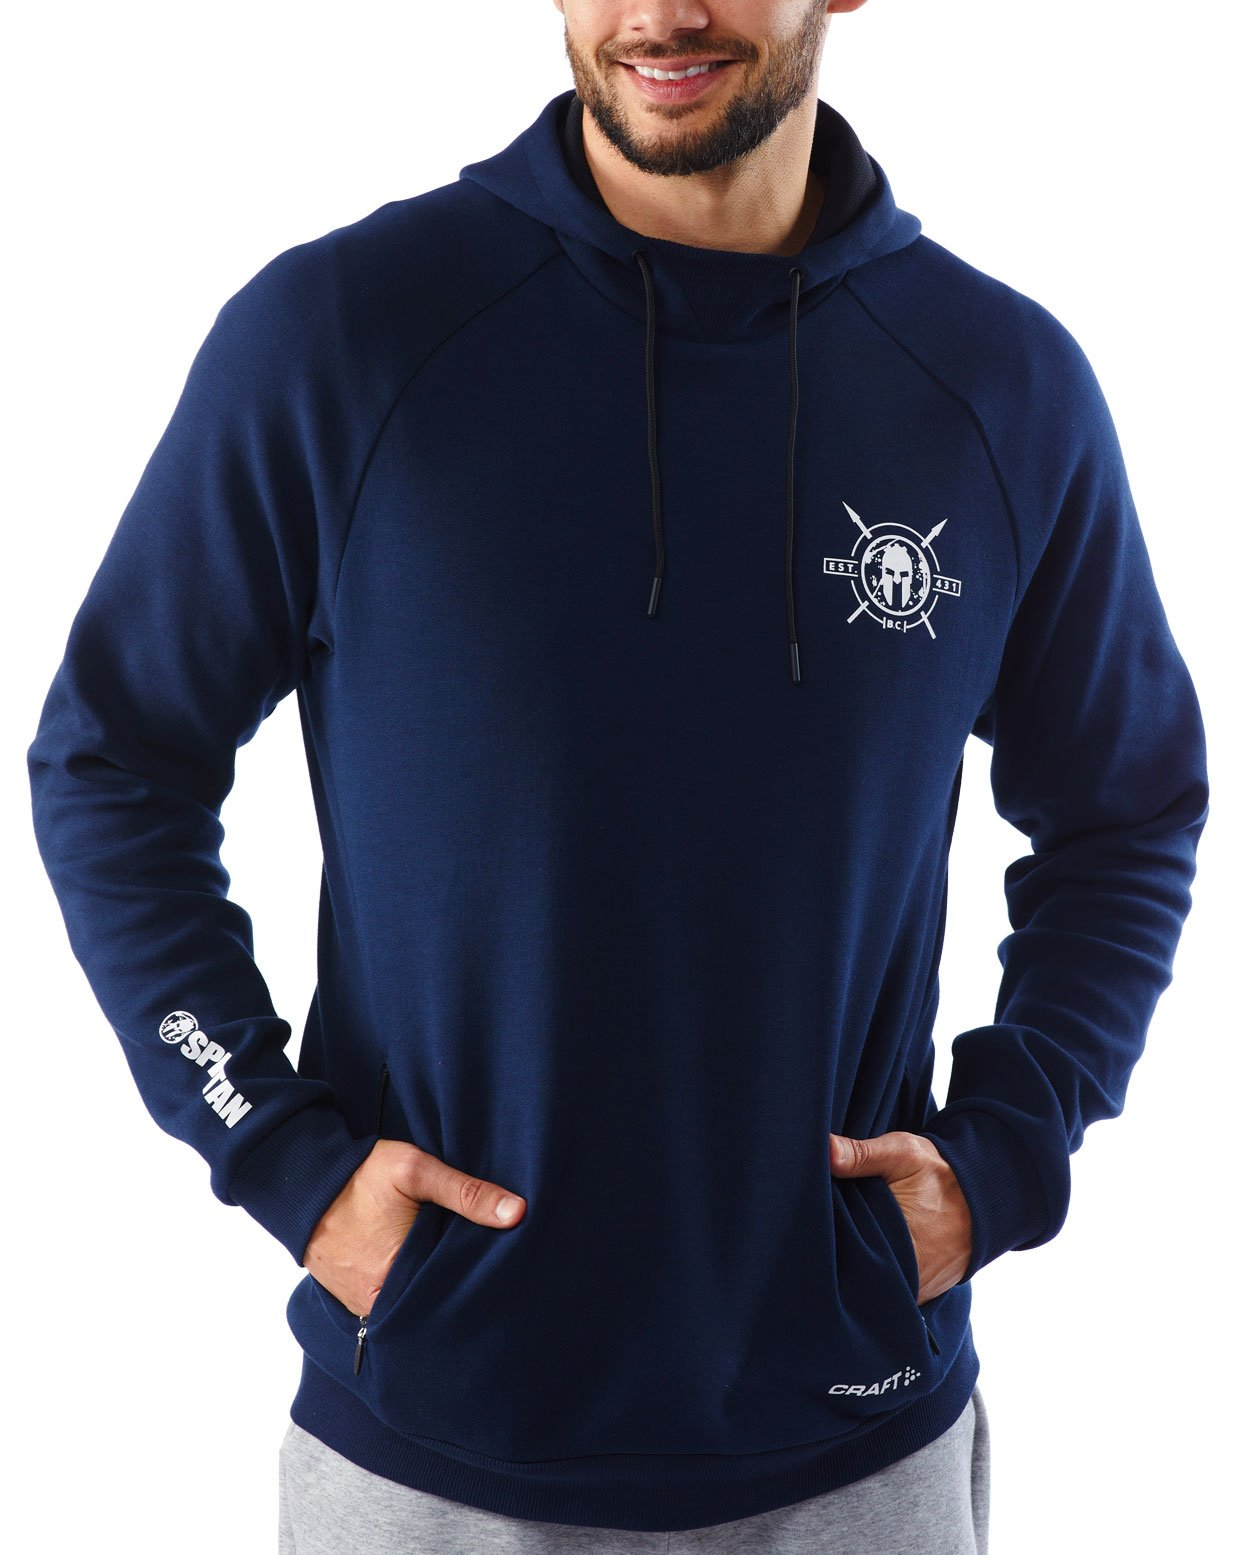 CRAFT SPARTAN By CRAFT District Pullover Hoodie - Men's Navy S